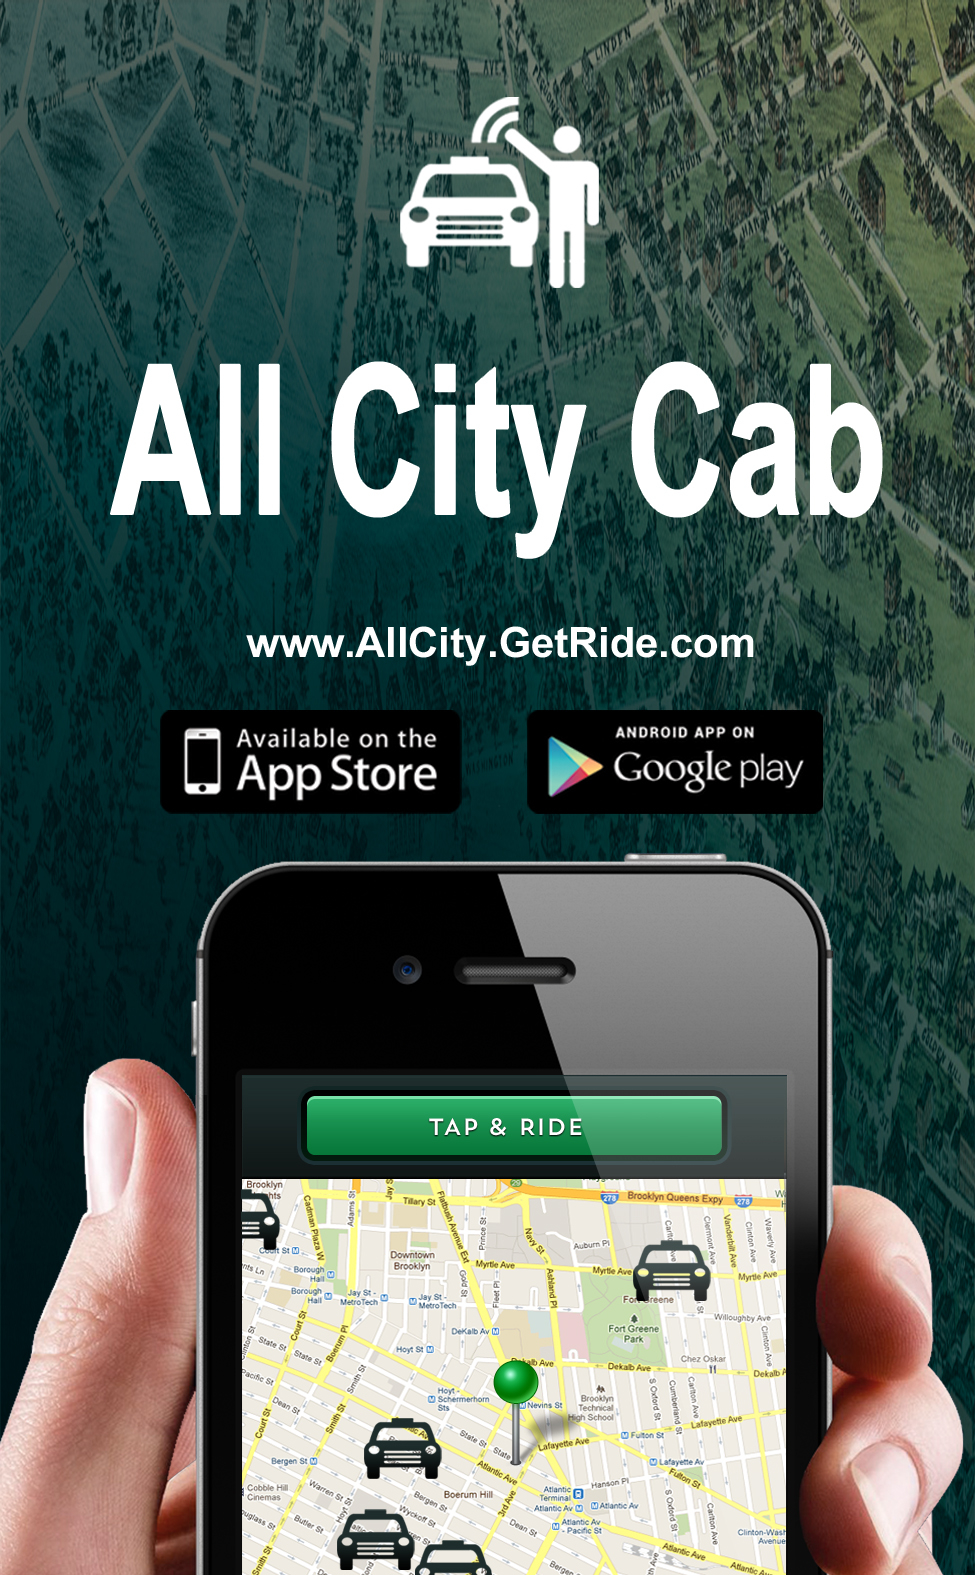 All City Taxi Cab - Escondido, CA 92025 - (760)747-8888 | ShowMeLocal.com